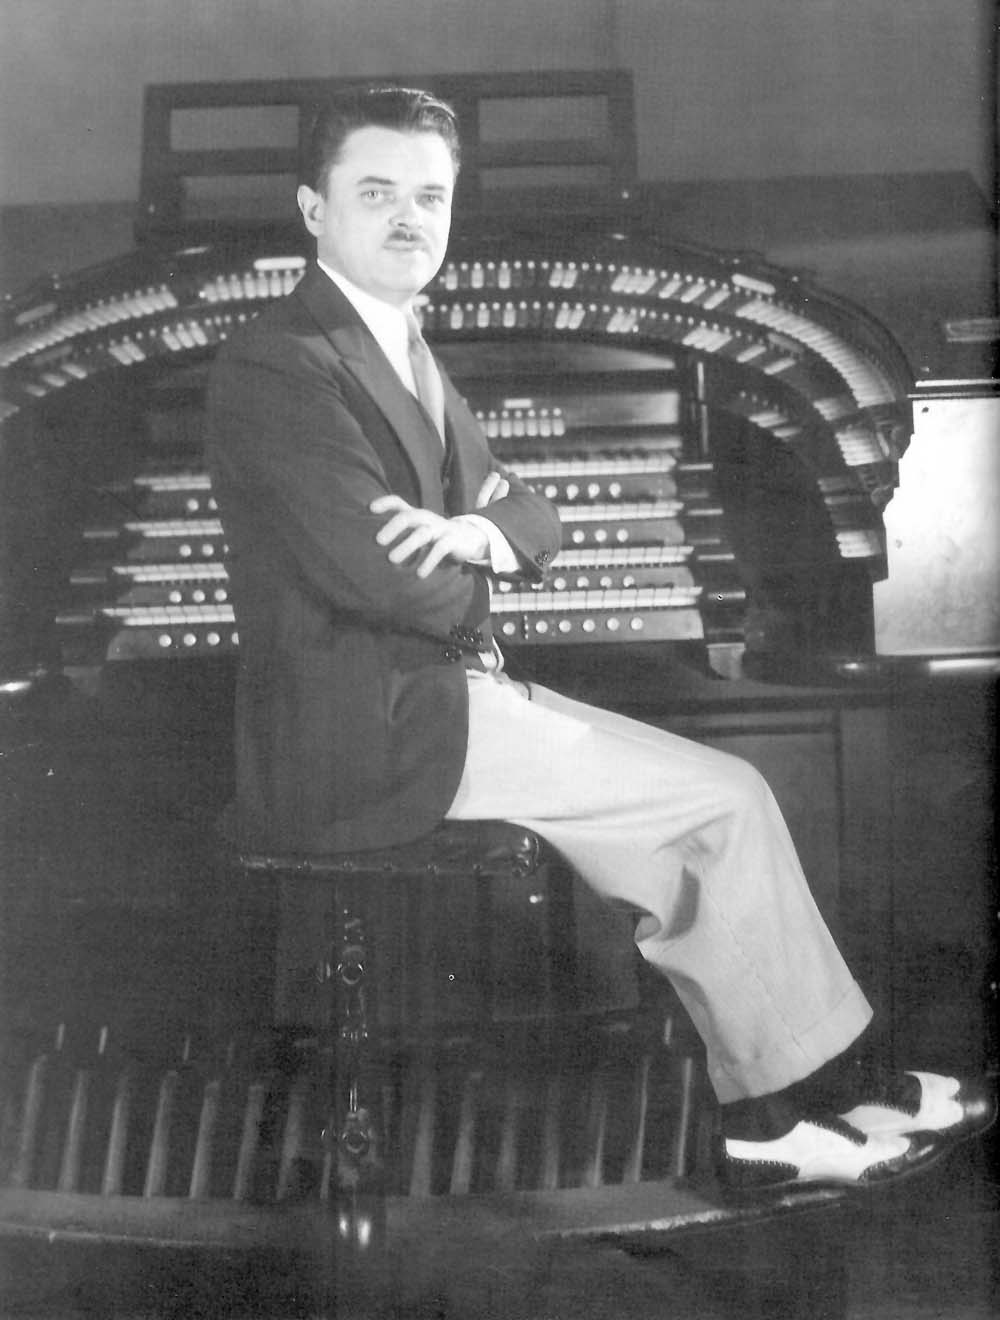 Jesse Crawford at the Wurlitzer Organ, Op. 1960 (1928) in the Paramount Theatre Studio - New York City